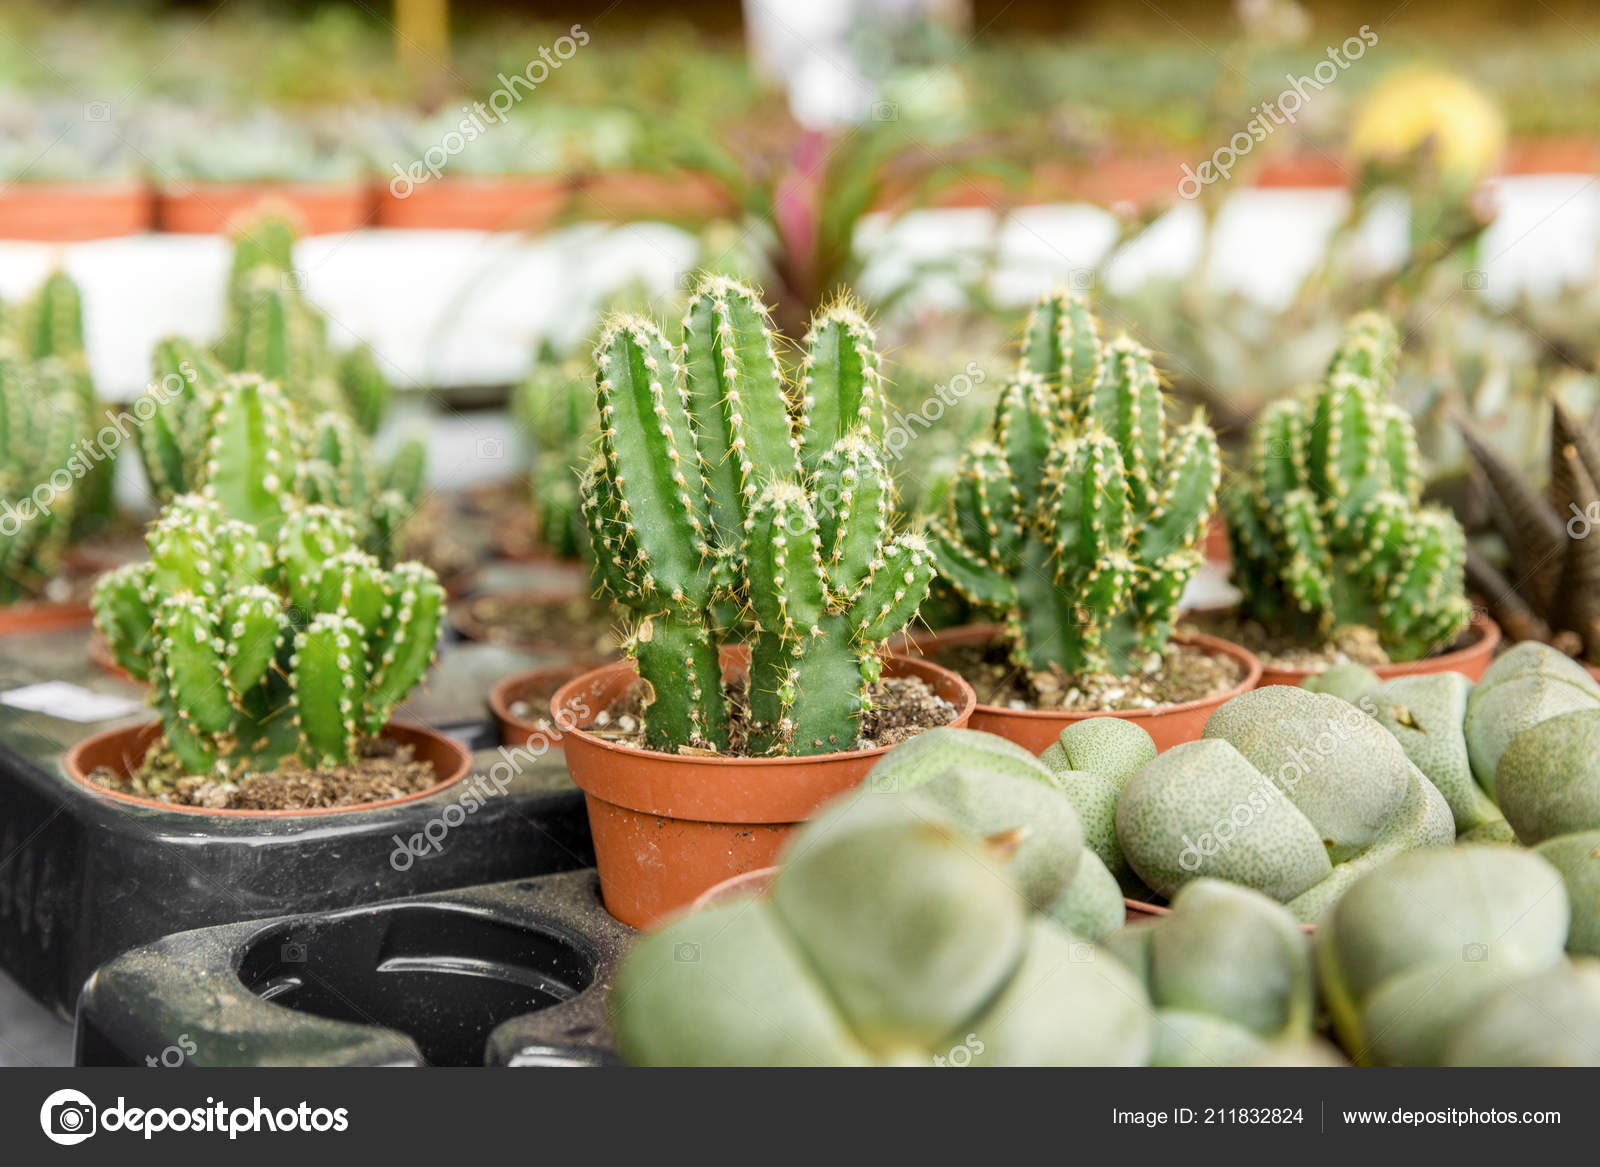 Cacti and different types of succulents in flower pots\u2013 stock image & Cacti Different Types Succulents Flower Pots \u2014 Stock Photo ...